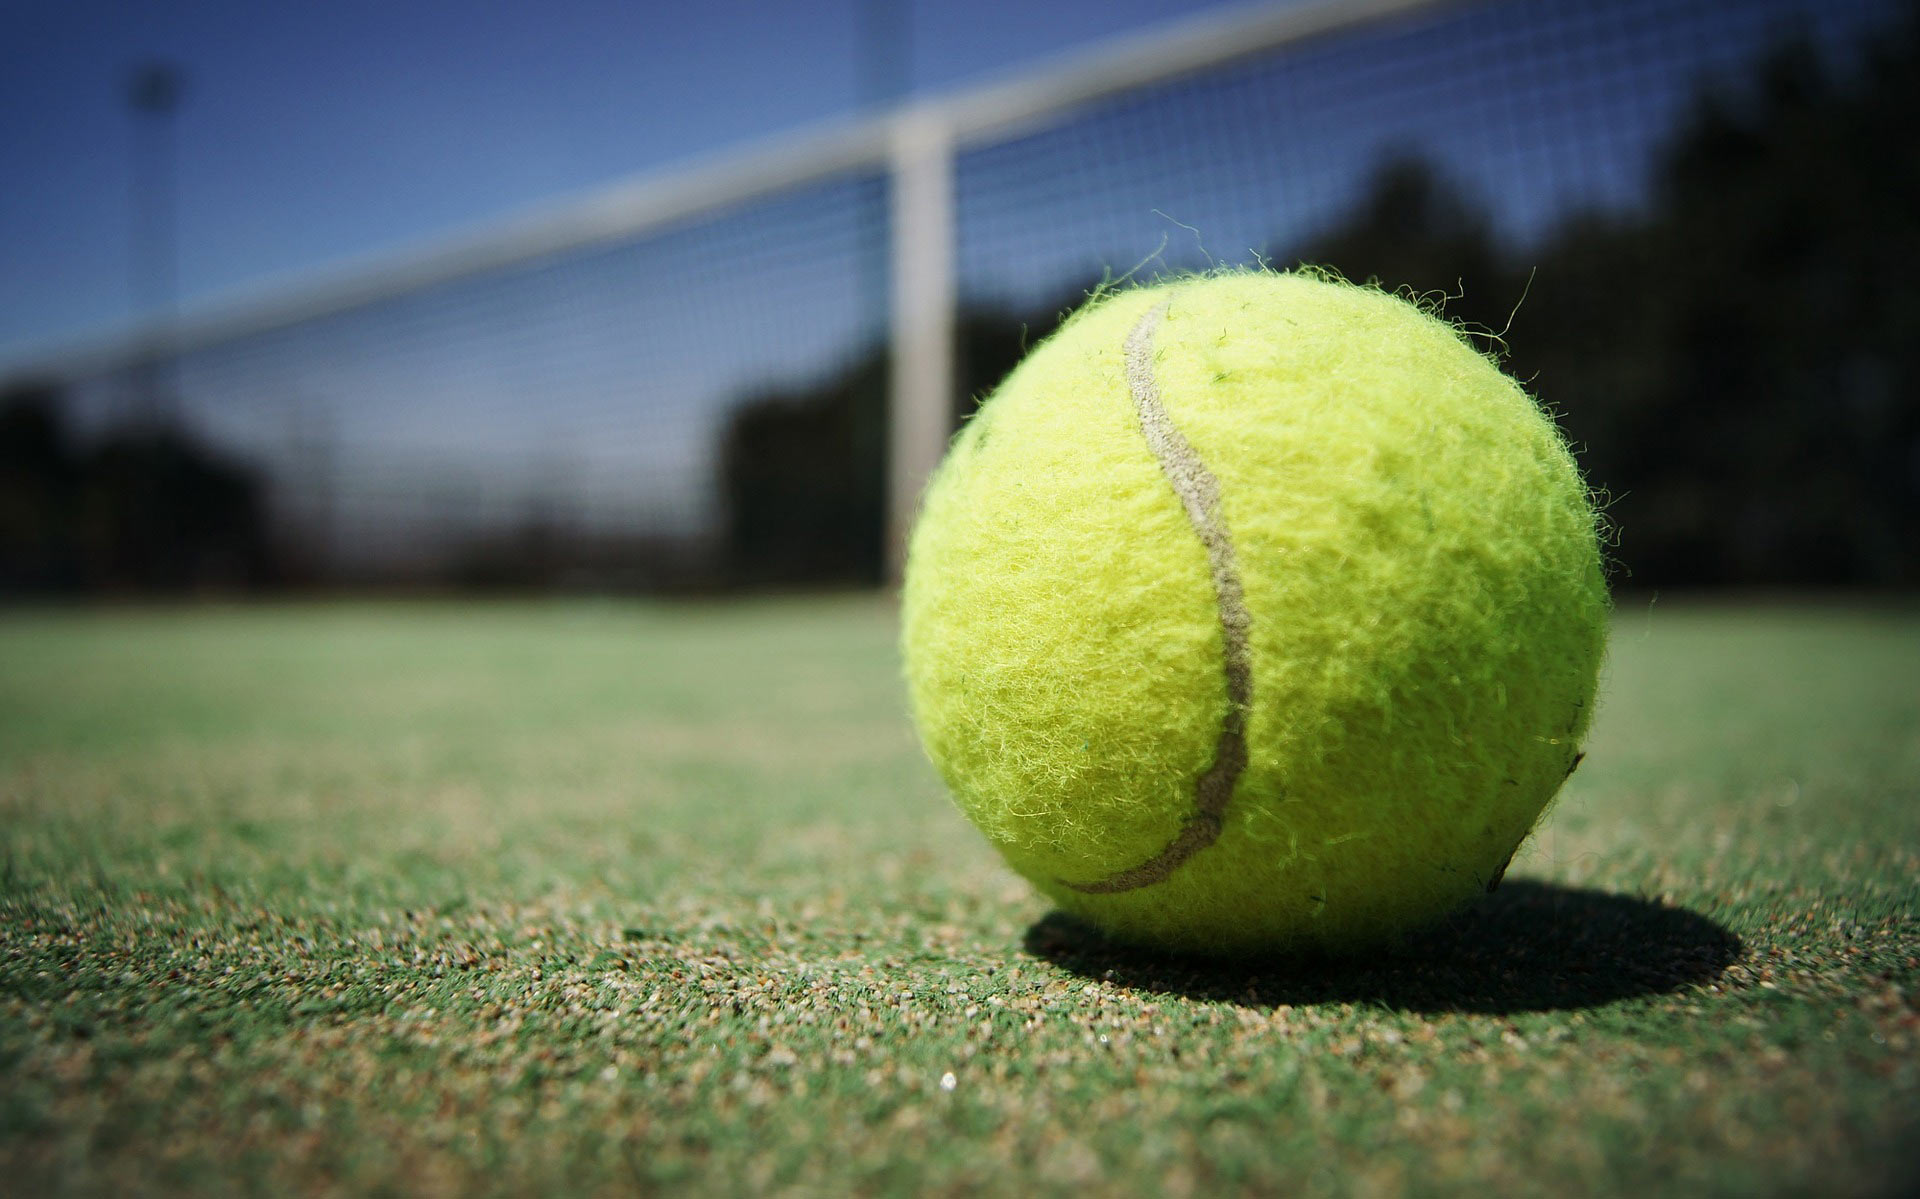 close-up of tennis ball on tennis court